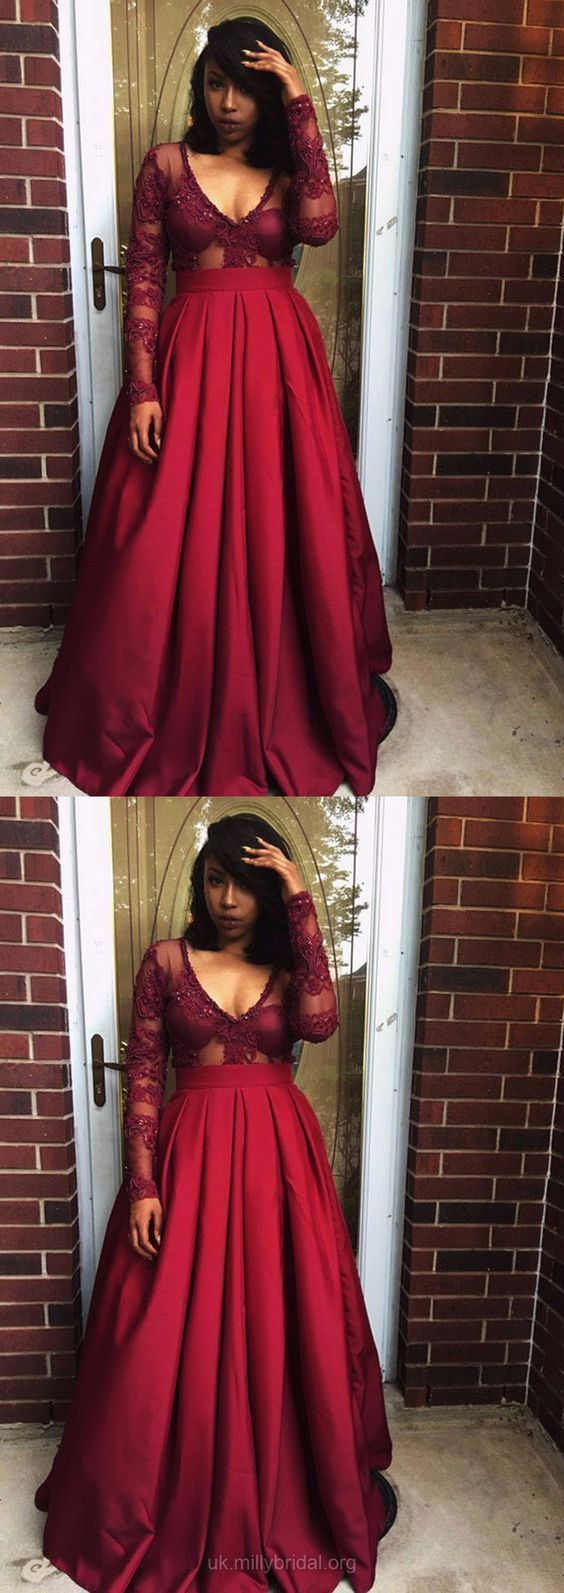 Burgundy Ball Gown V-neck Satin Tulle with Appliques Lace Floor-length Prom Dress M3053